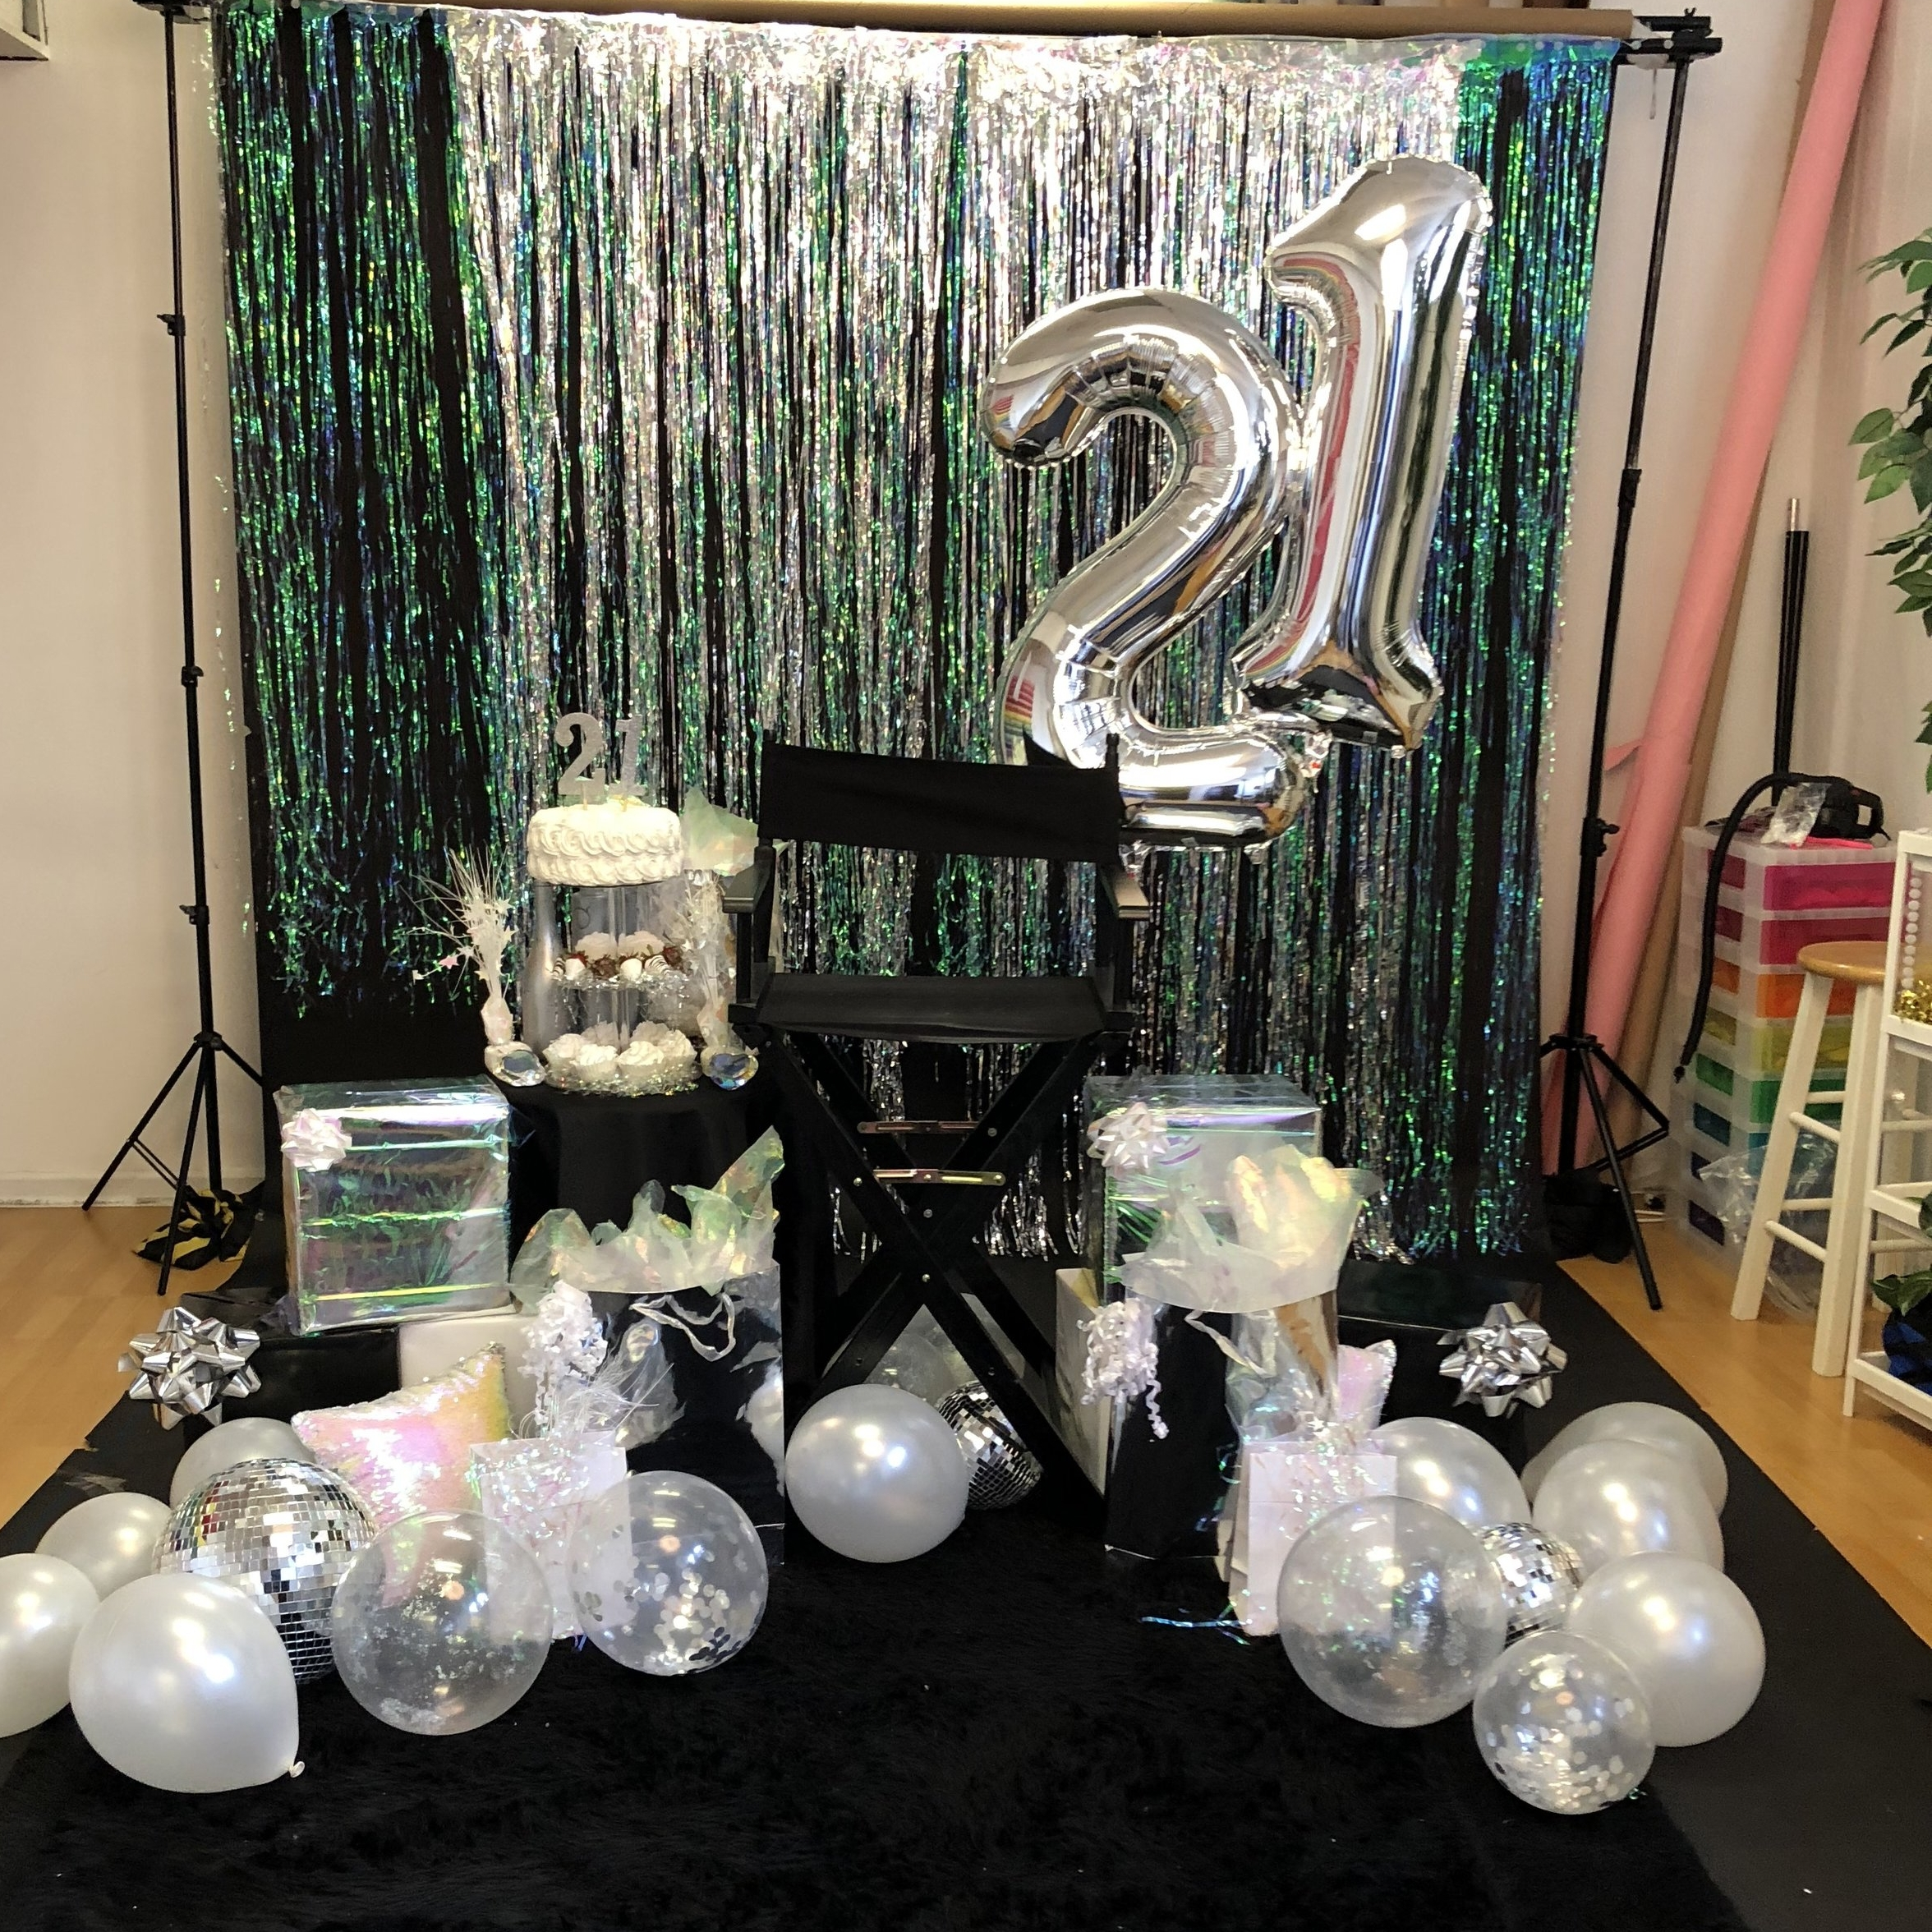 Scene Design Is Example And Is NOT LIMITED To Color Scheme Presented.   Client Provided Pre-Filled Helium Numbers (floor balloons provide by photographer)